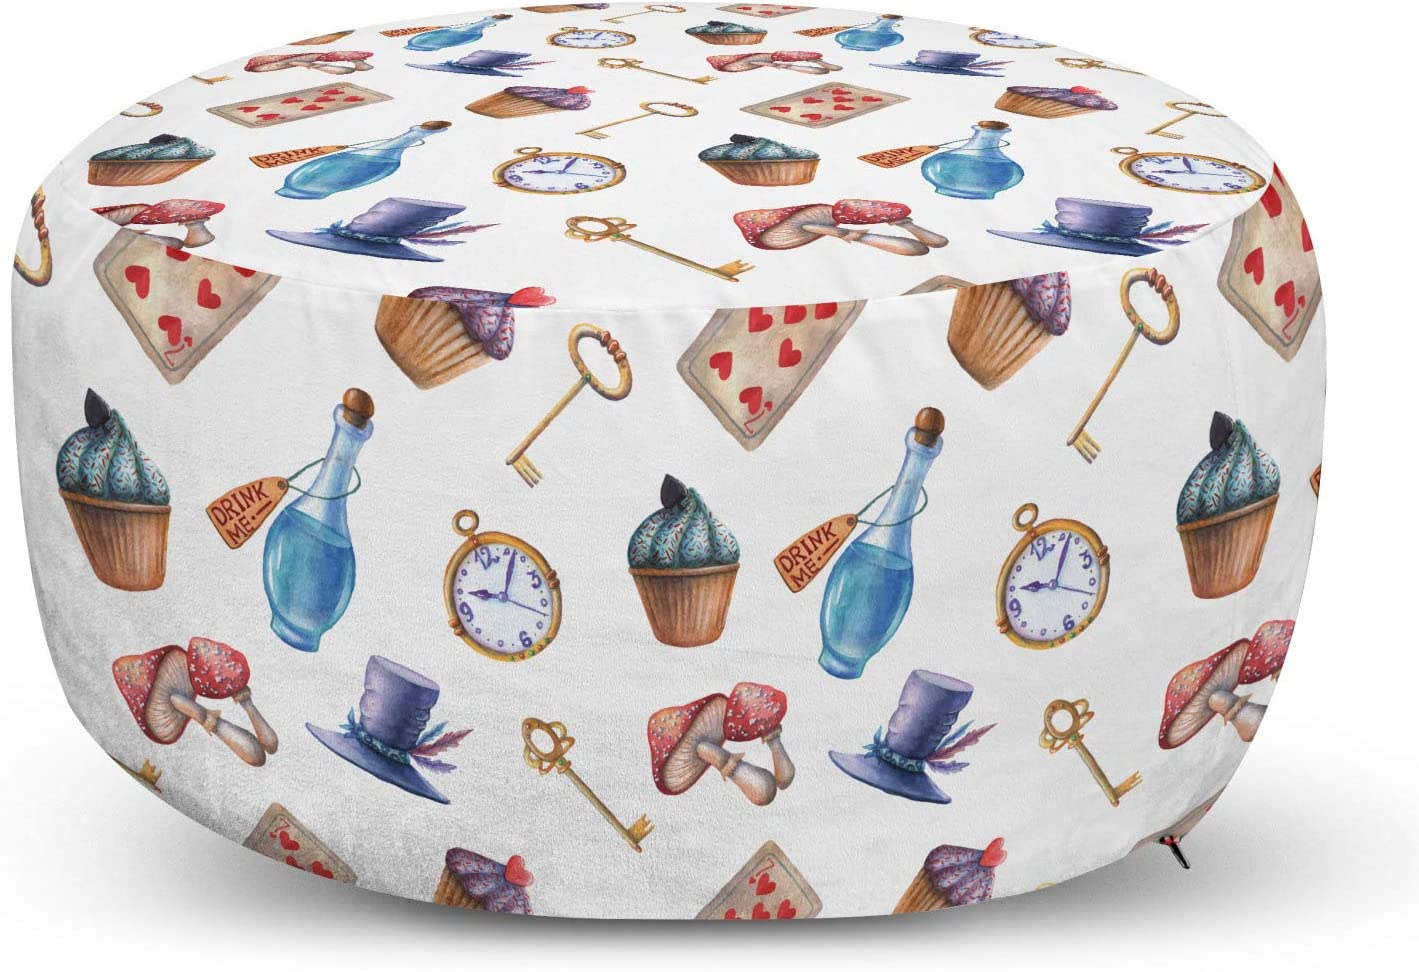 Lunarable Outstanding Alice in Wonderland Ottoman a Dealing full price reduction Pouf Mushrooms Cupcakes